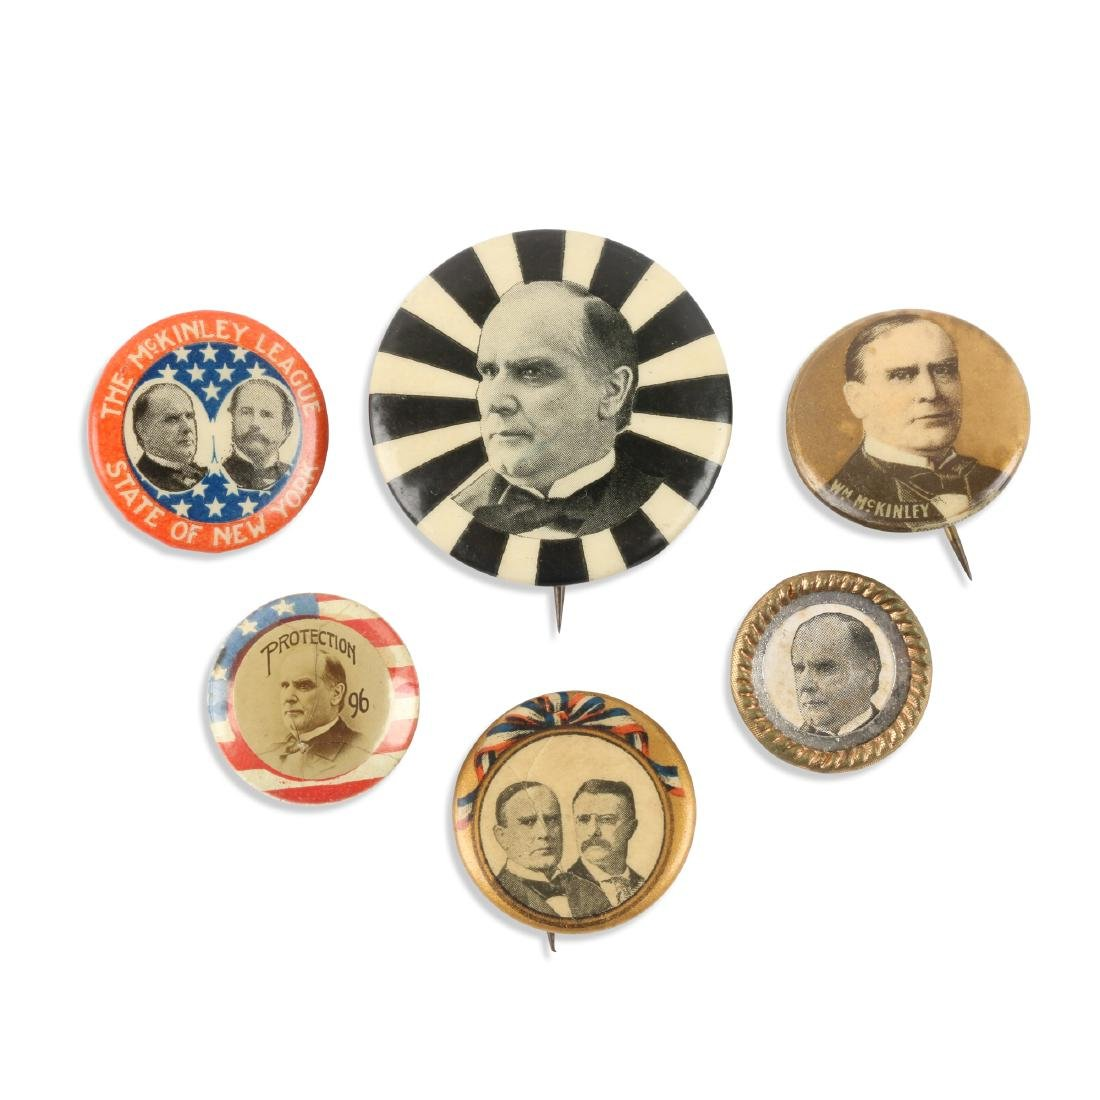 1896-1900 Political Pinbacks, Lapel Studs